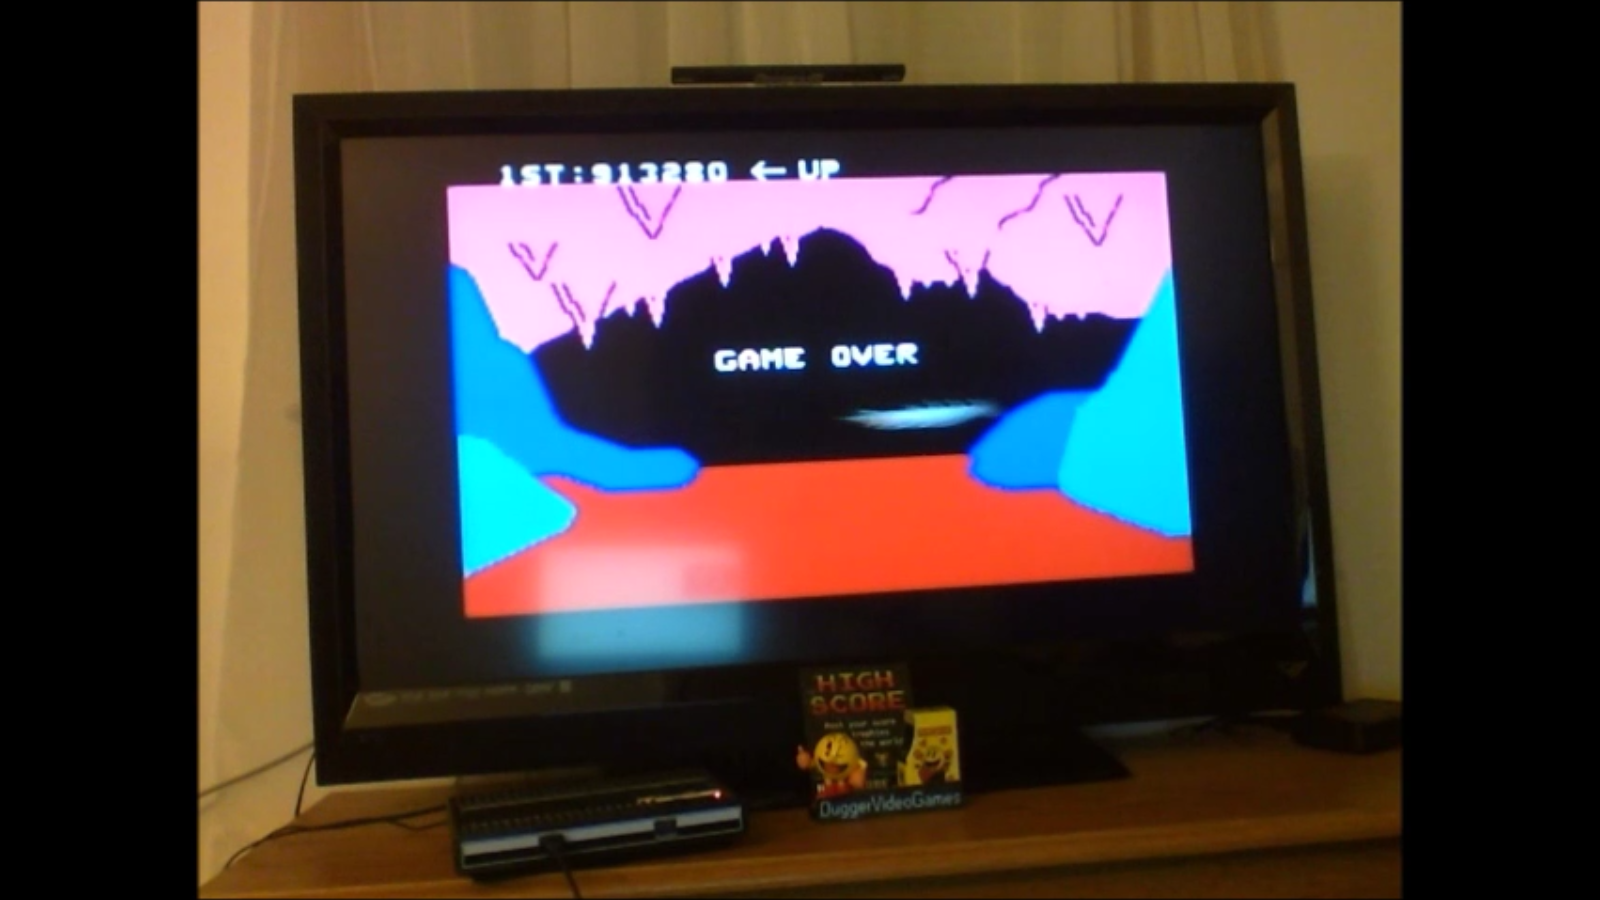 DuggerVideoGames: Sir Lancelot (Colecovision Flashback) 913,280 points on 2016-11-24 02:31:09